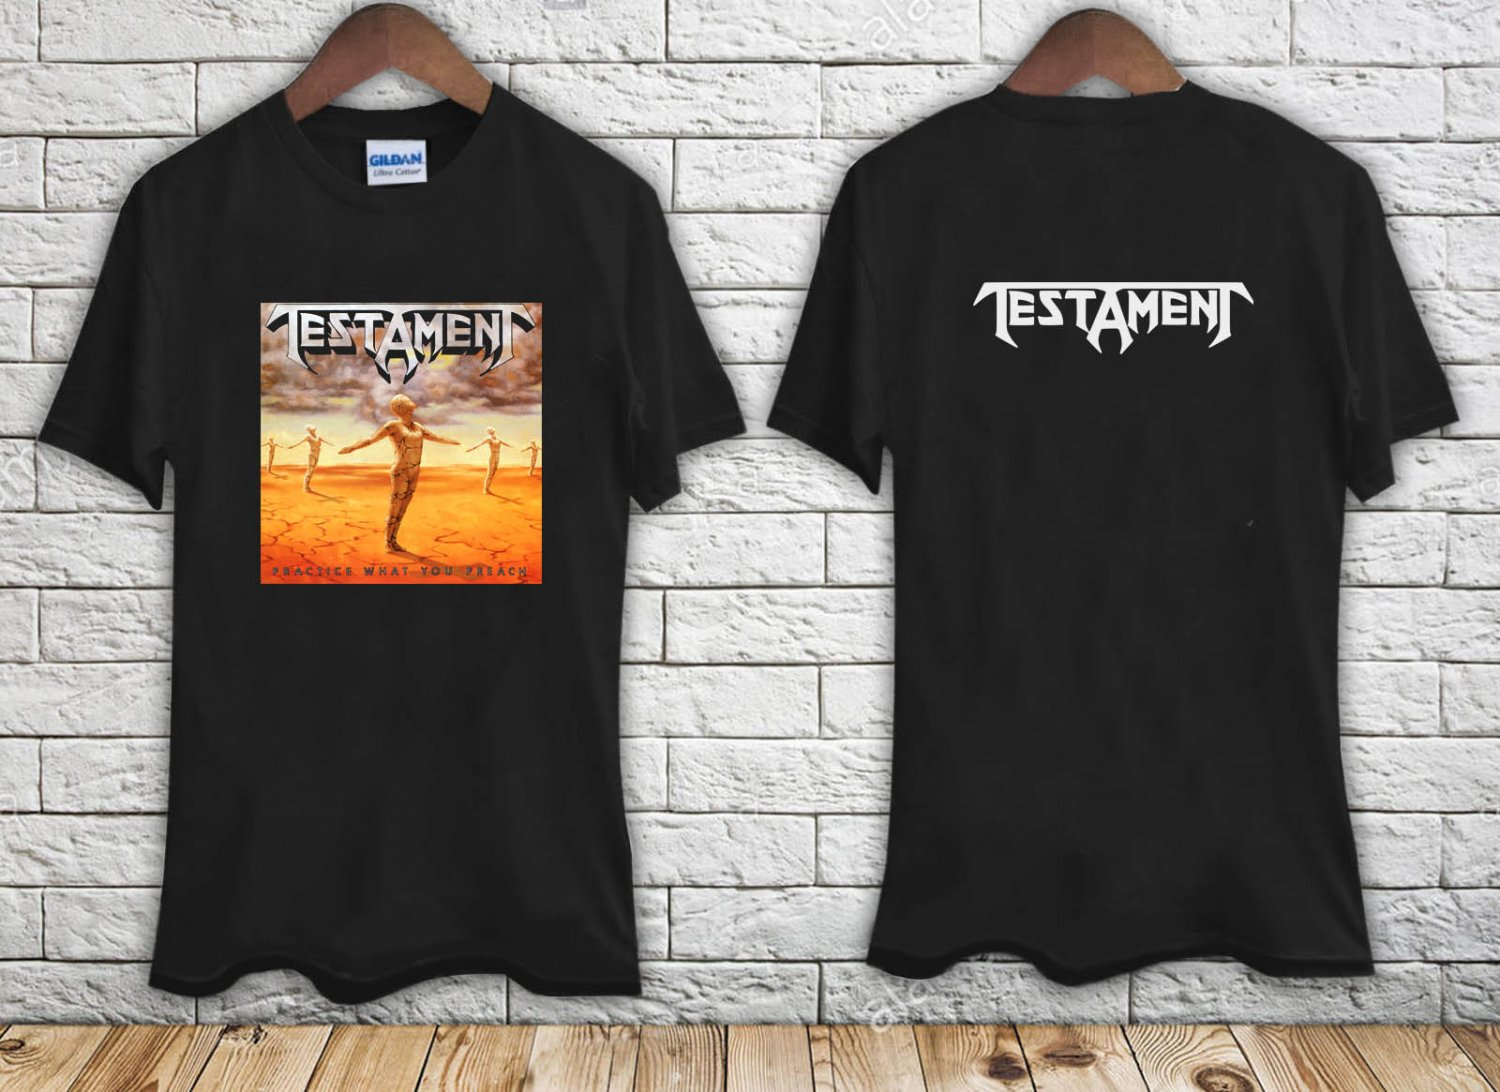 TESTAMENT PRACTICE WHAT YOU PREACH 89 THRASH MEGADETH ANTHRAX black t-shirt tshirt shirts tee SIZE S